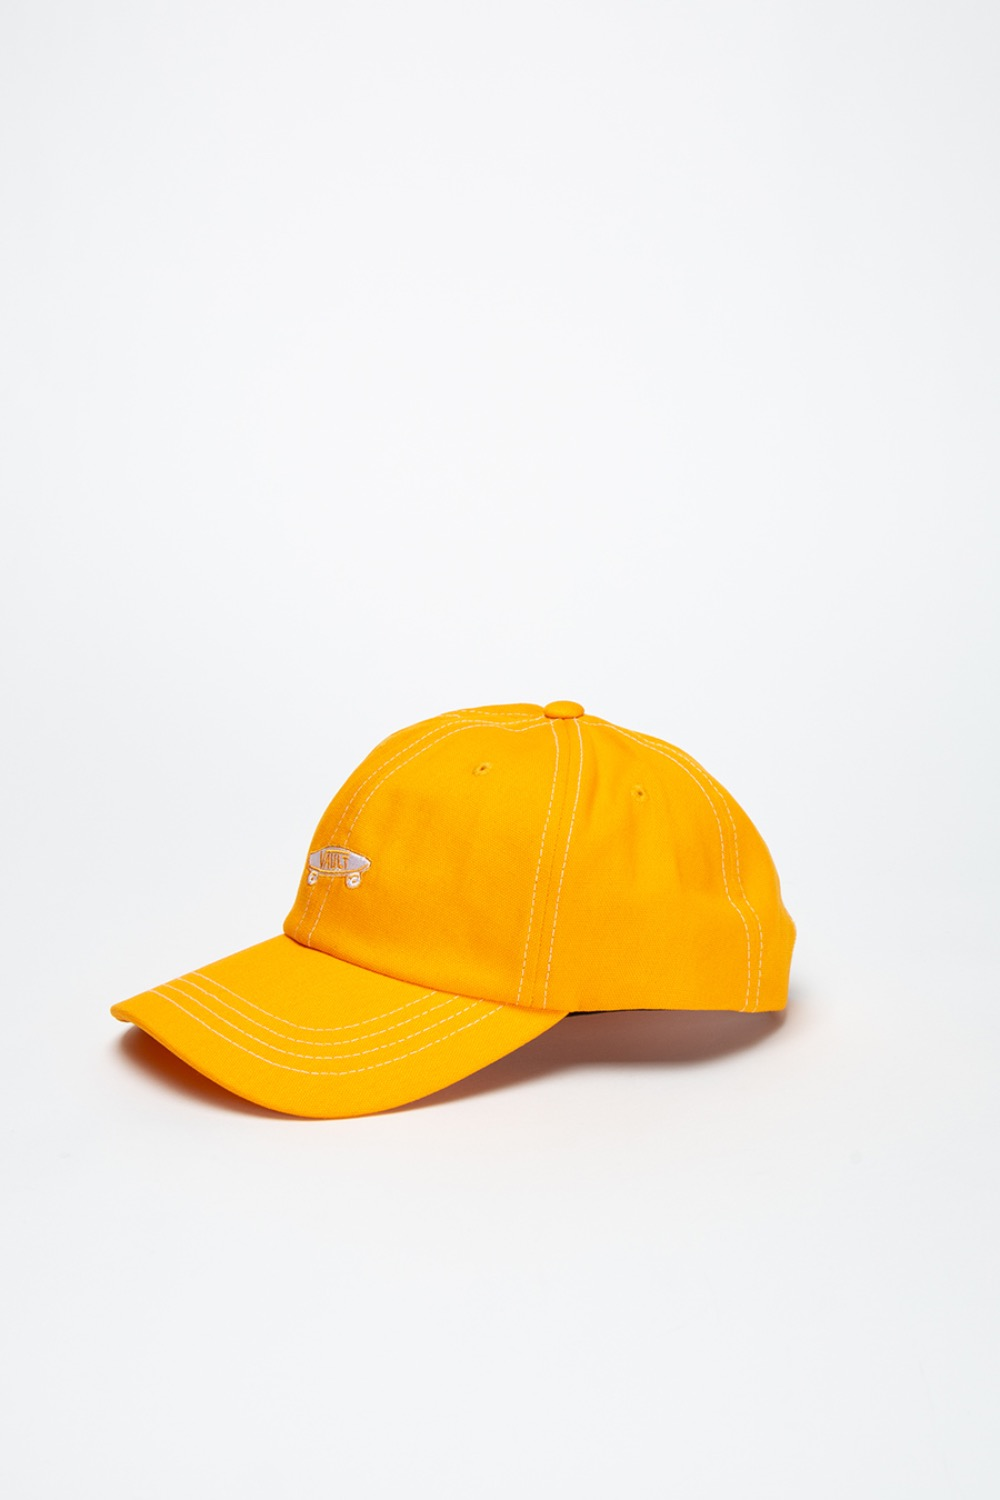 VAULT OG CURVED BILL JOCKEY ORANGE